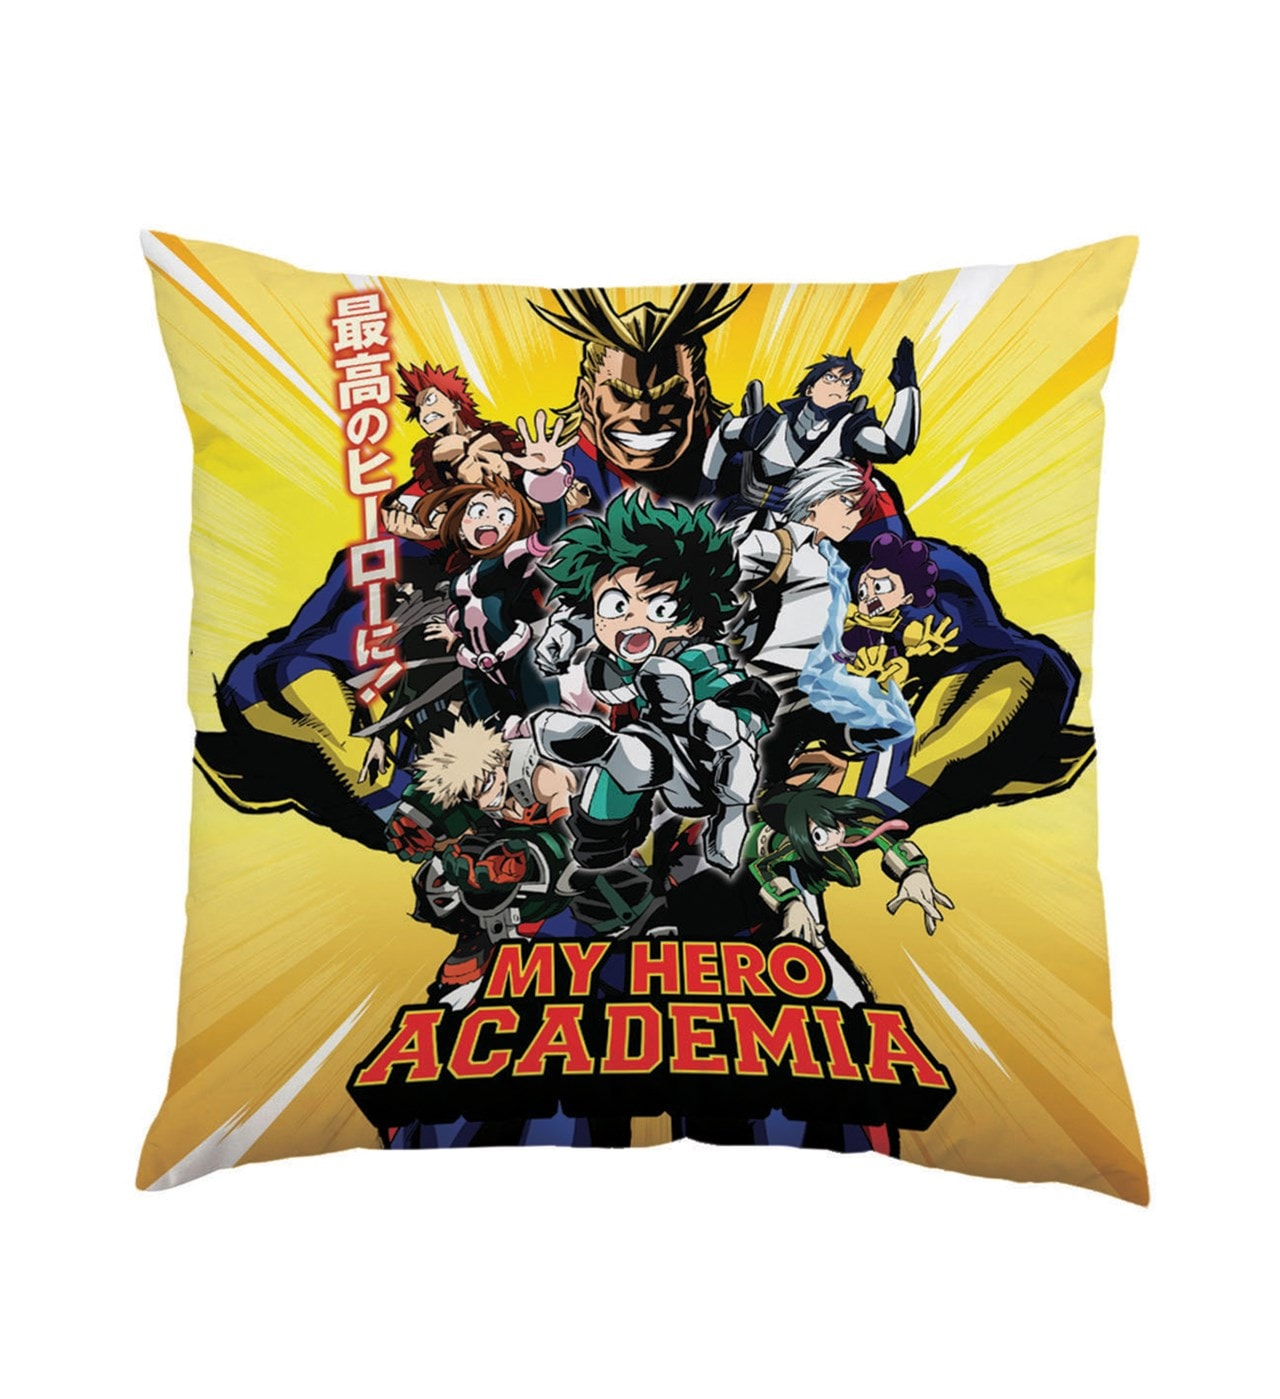 My Hero Academia Cushion - 1